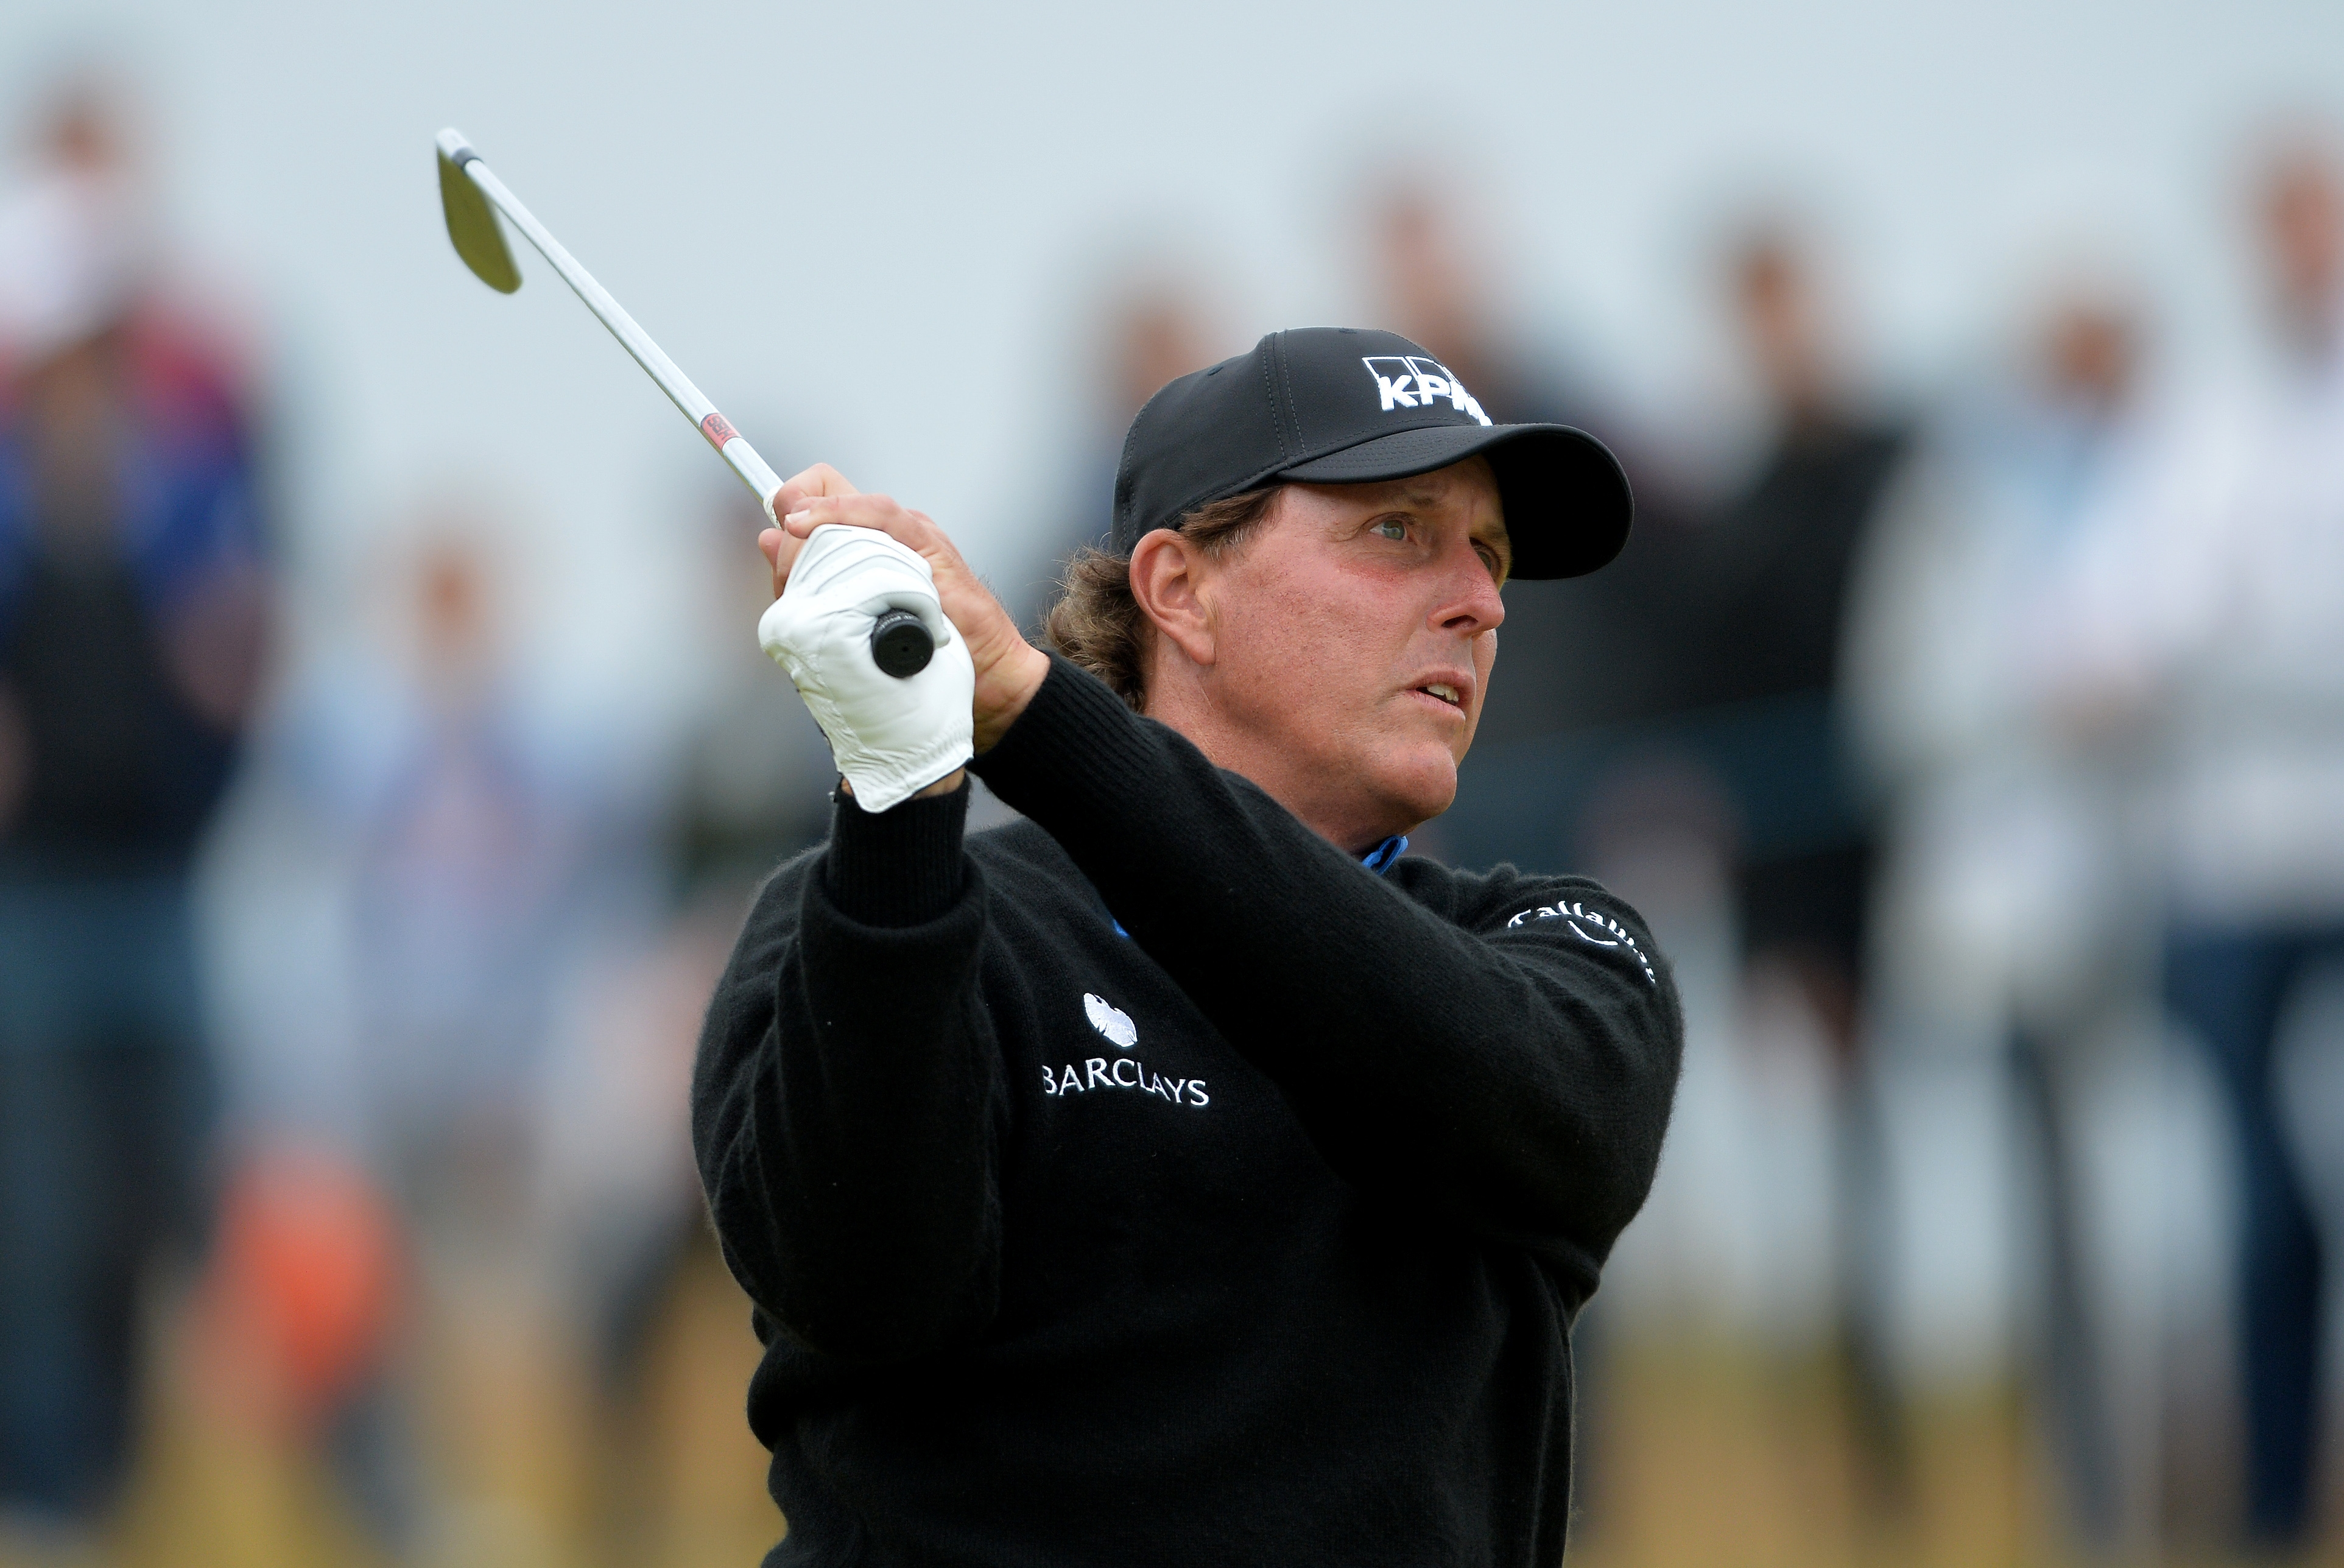 Phil Mickelson will look upon Sunday's final round at Royal Troon as one of his greatest performances, even though he finished in second place. (Mark Runnacles/Getty Images)